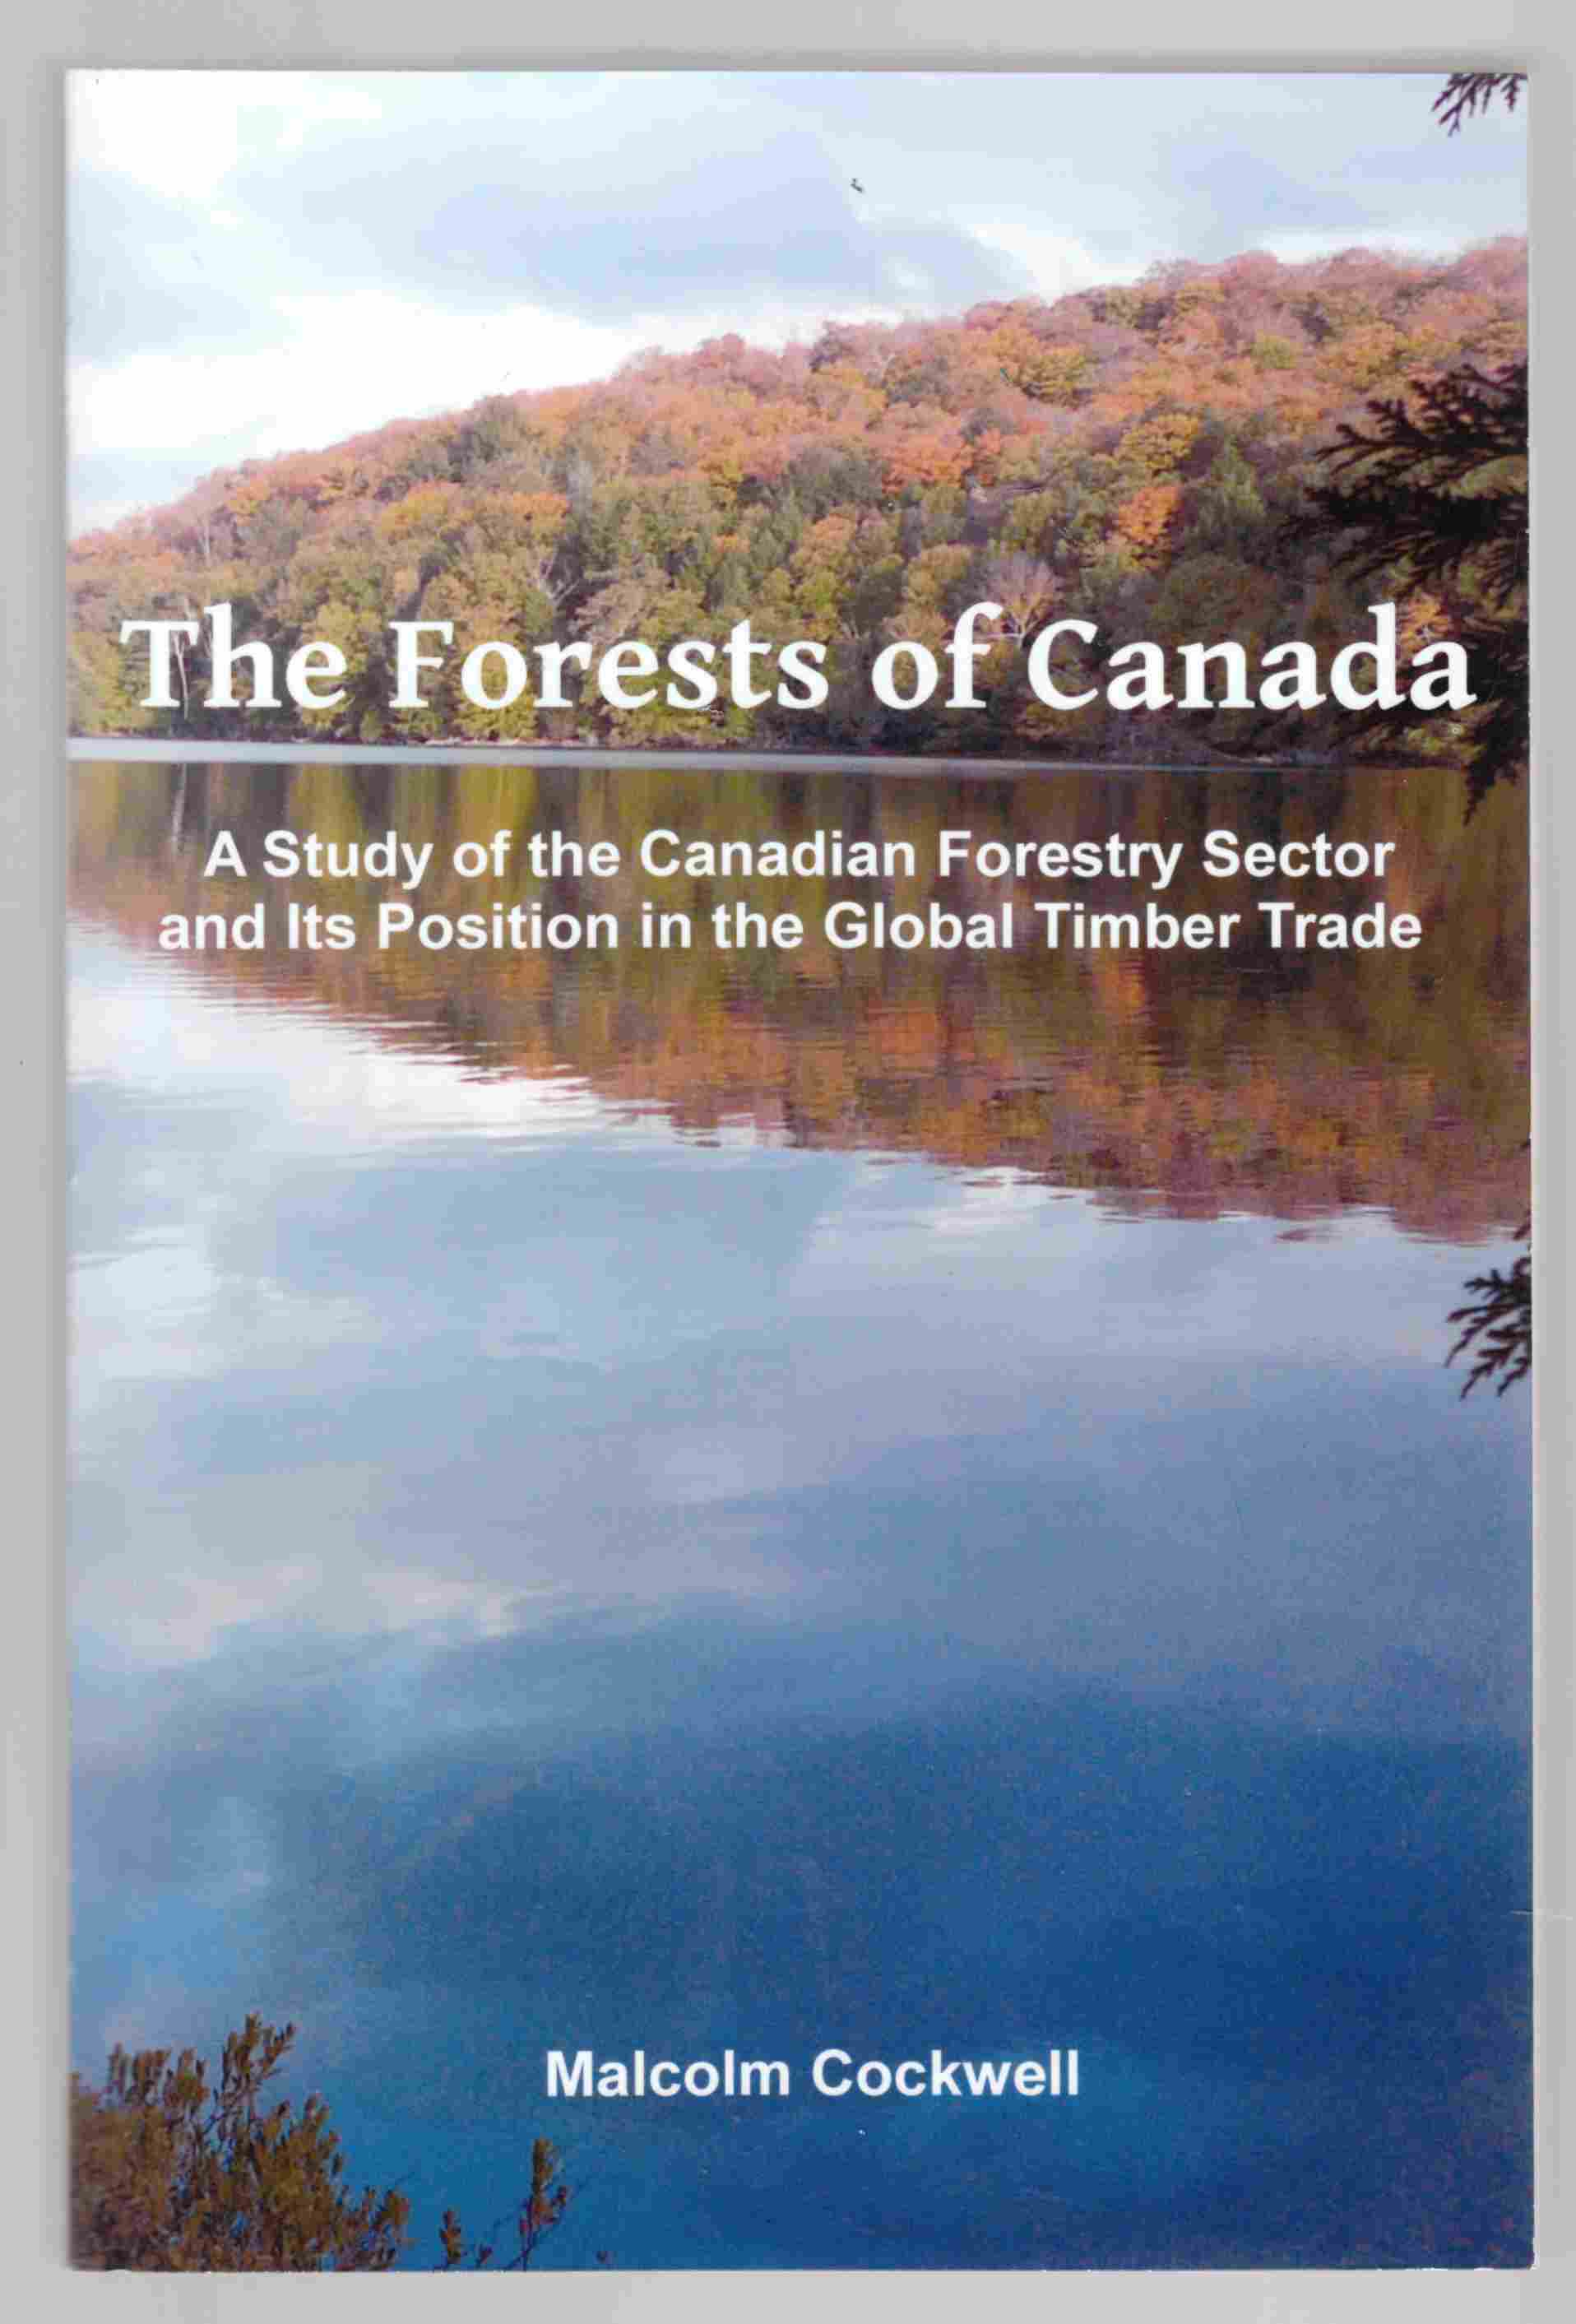 Image for The Forests of Canada A Study of the Canadian Forestry Sector and its Position in the Global Timber Trade